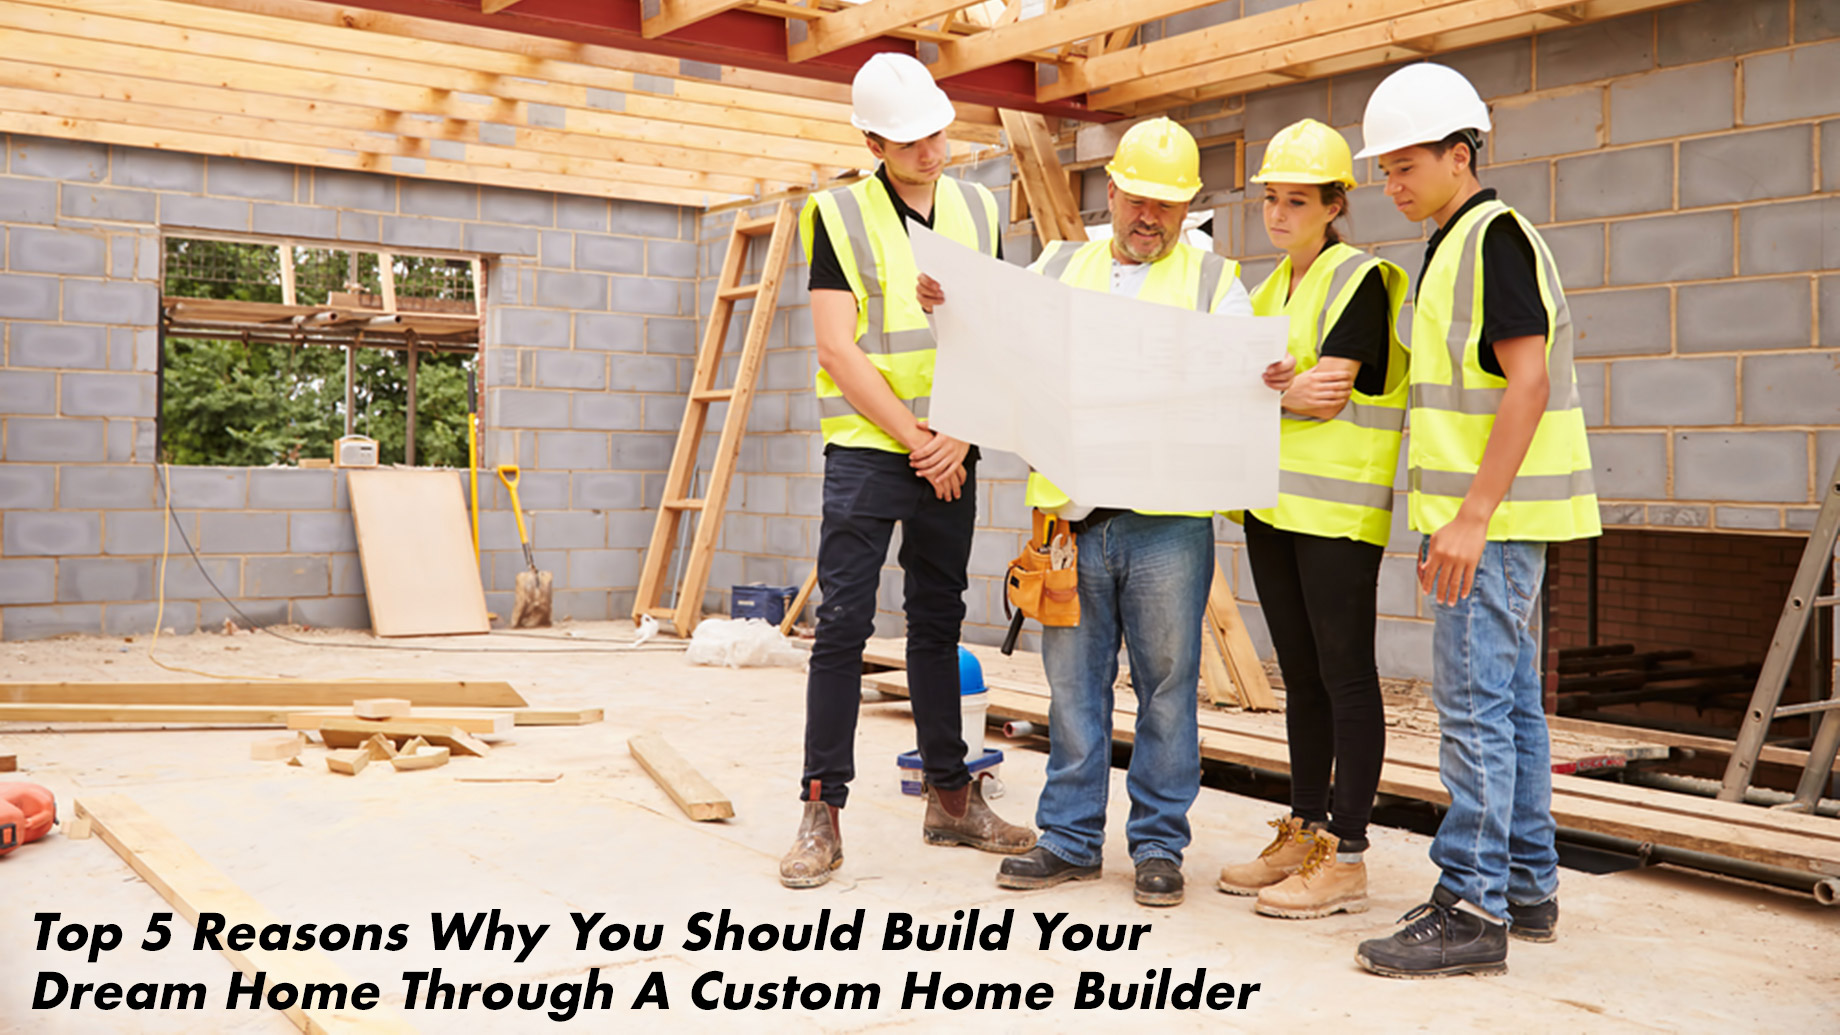 Top 5 Reasons Why You Should Build Your Dream Home Through A Custom Home Builder